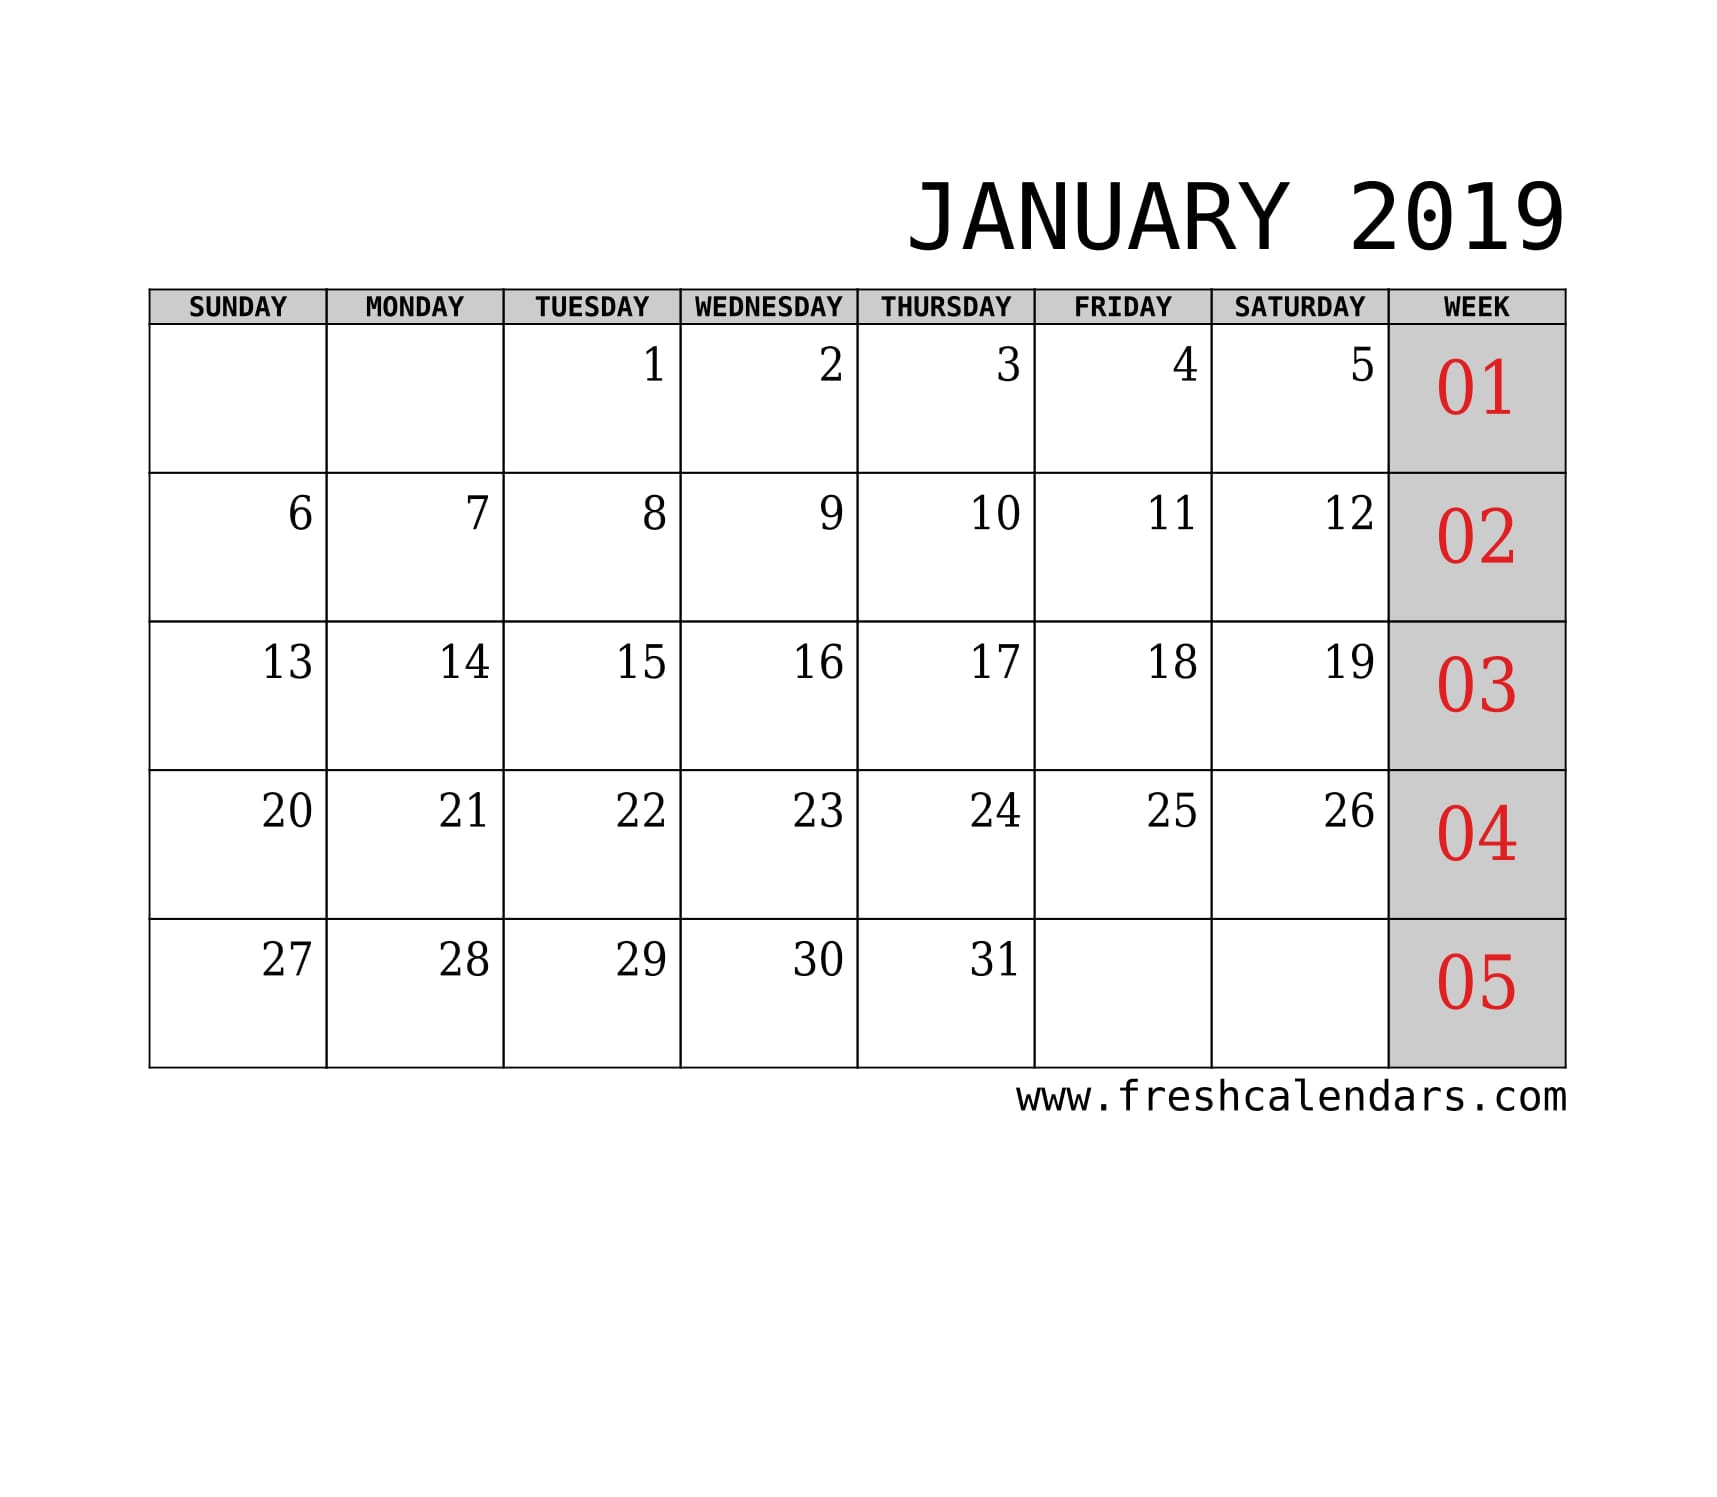 January 2019 Calendar With Week Template Printable